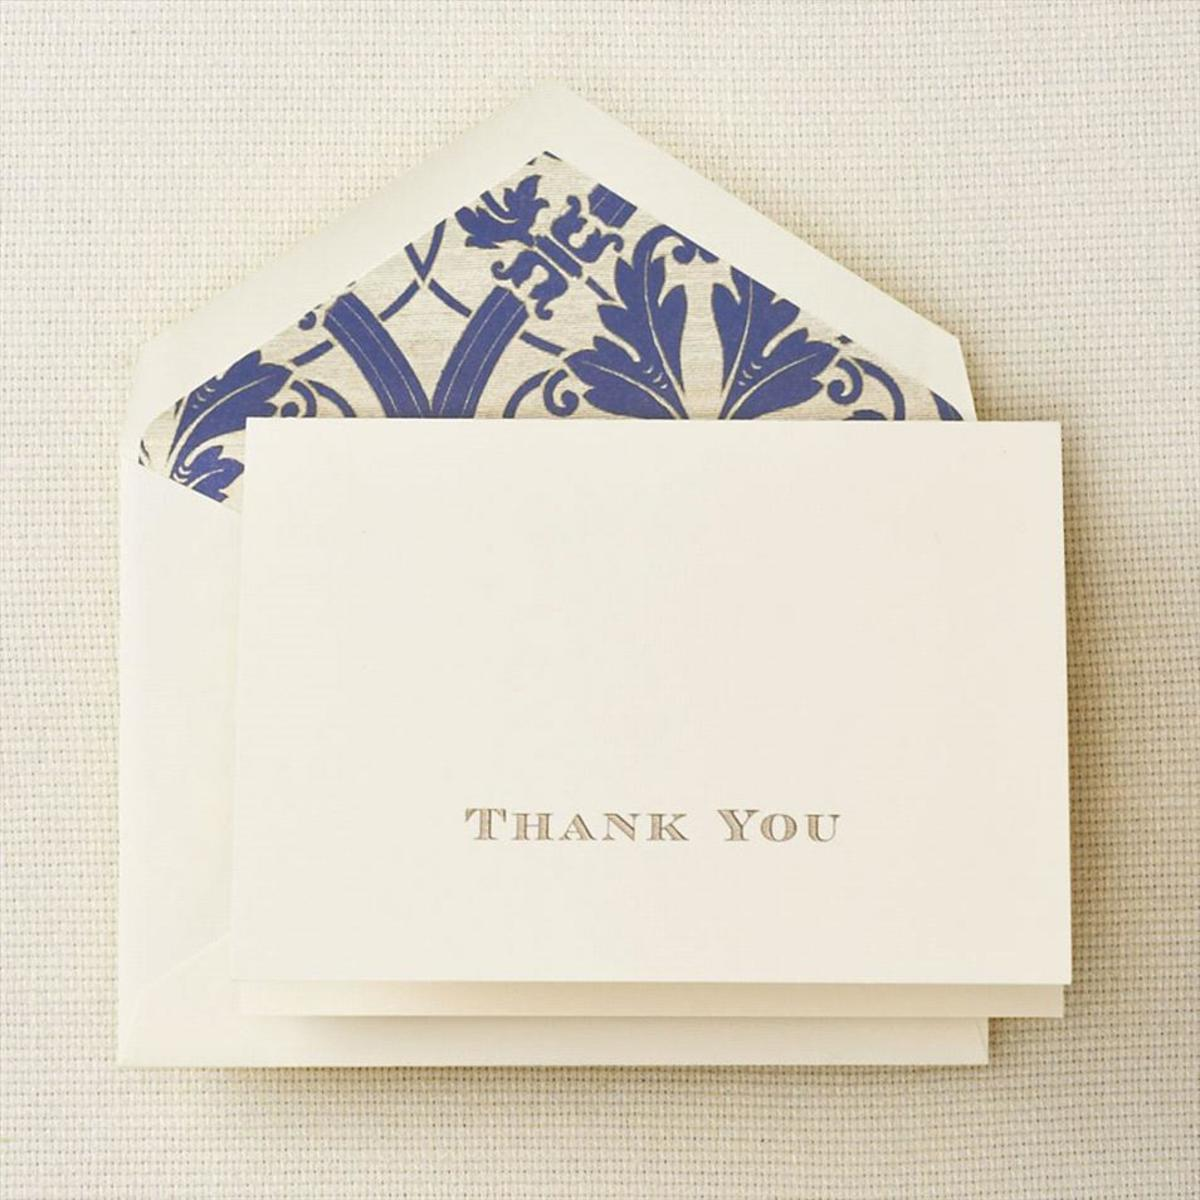 Bread and Butter: The Art of Thank You